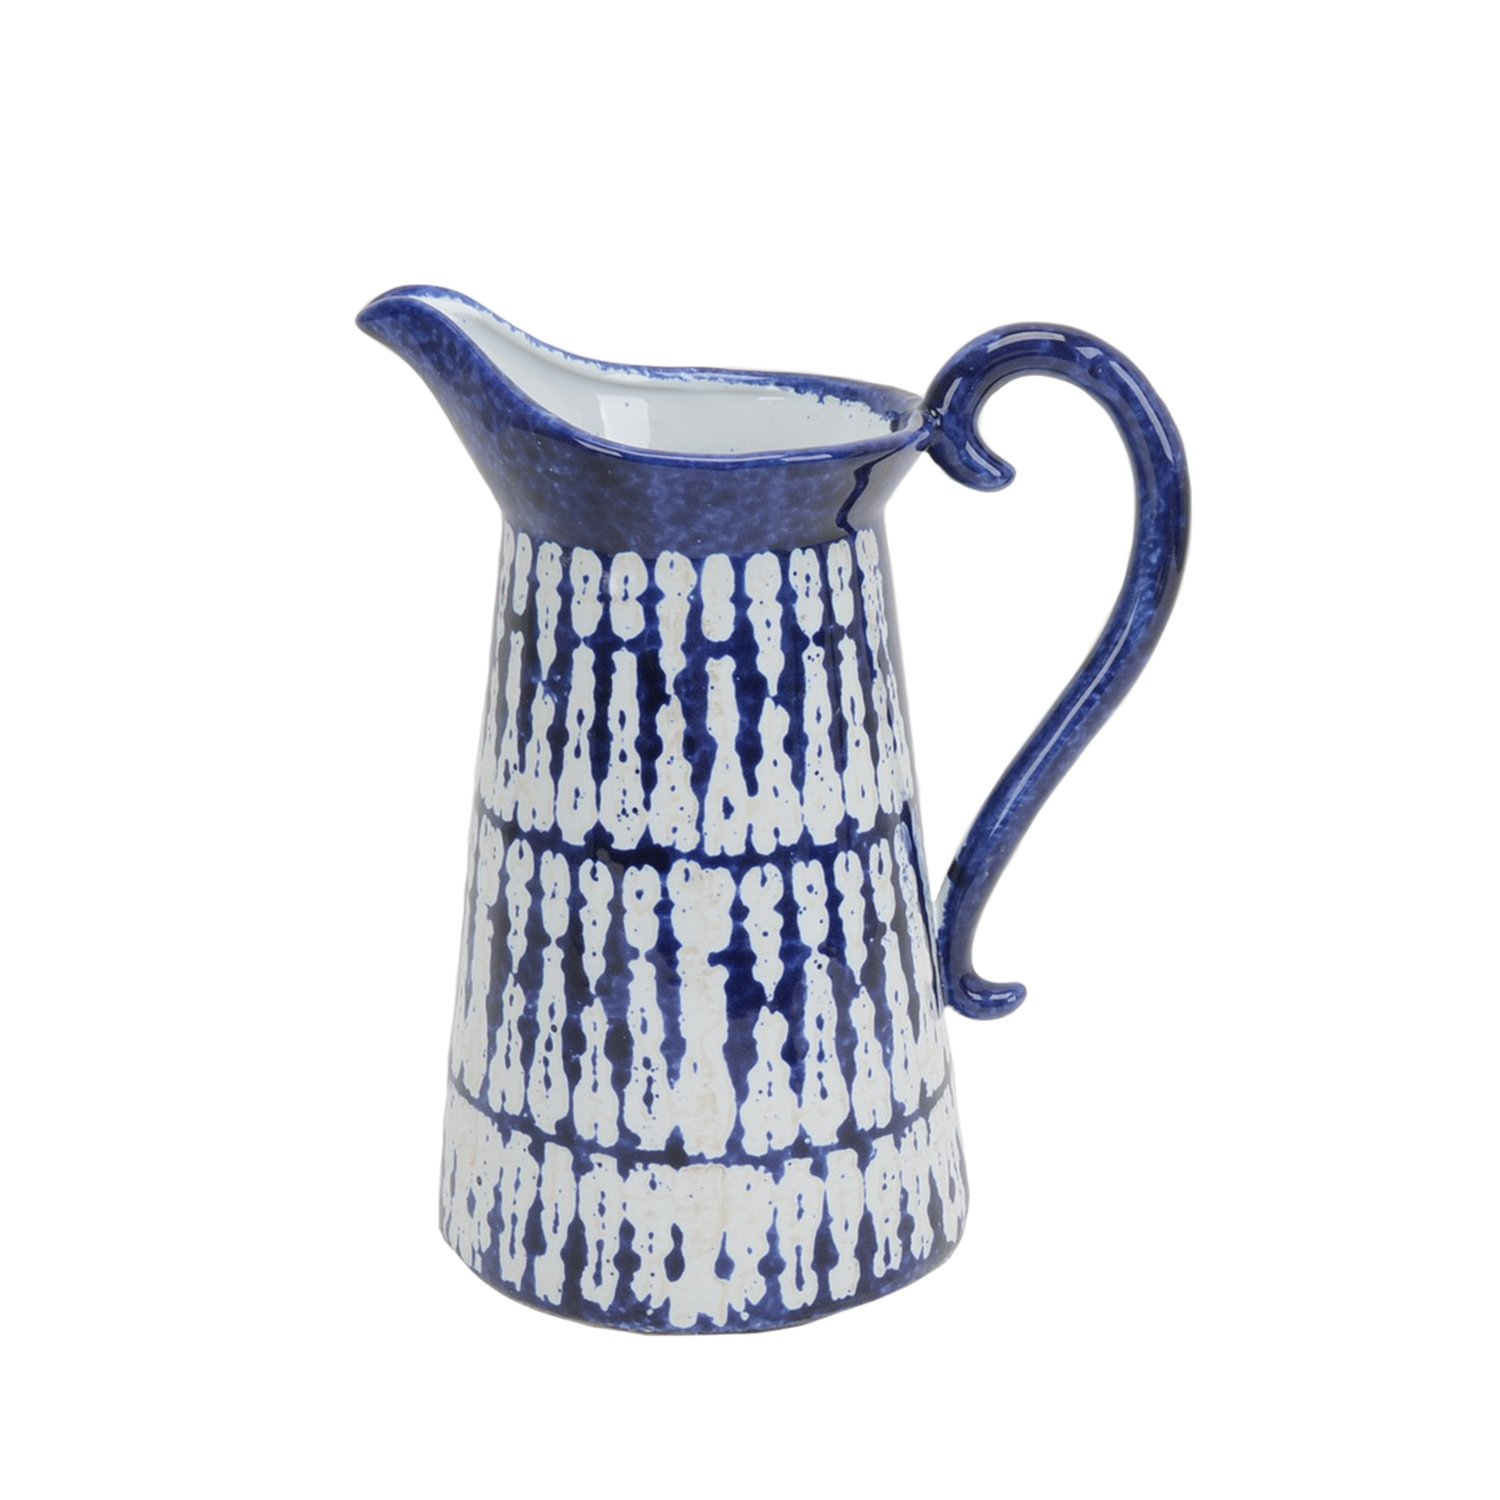 Sagebrook Home 13726-03 Ceramic Pitcher, 9'' x 6'' x 11'', Blue/White